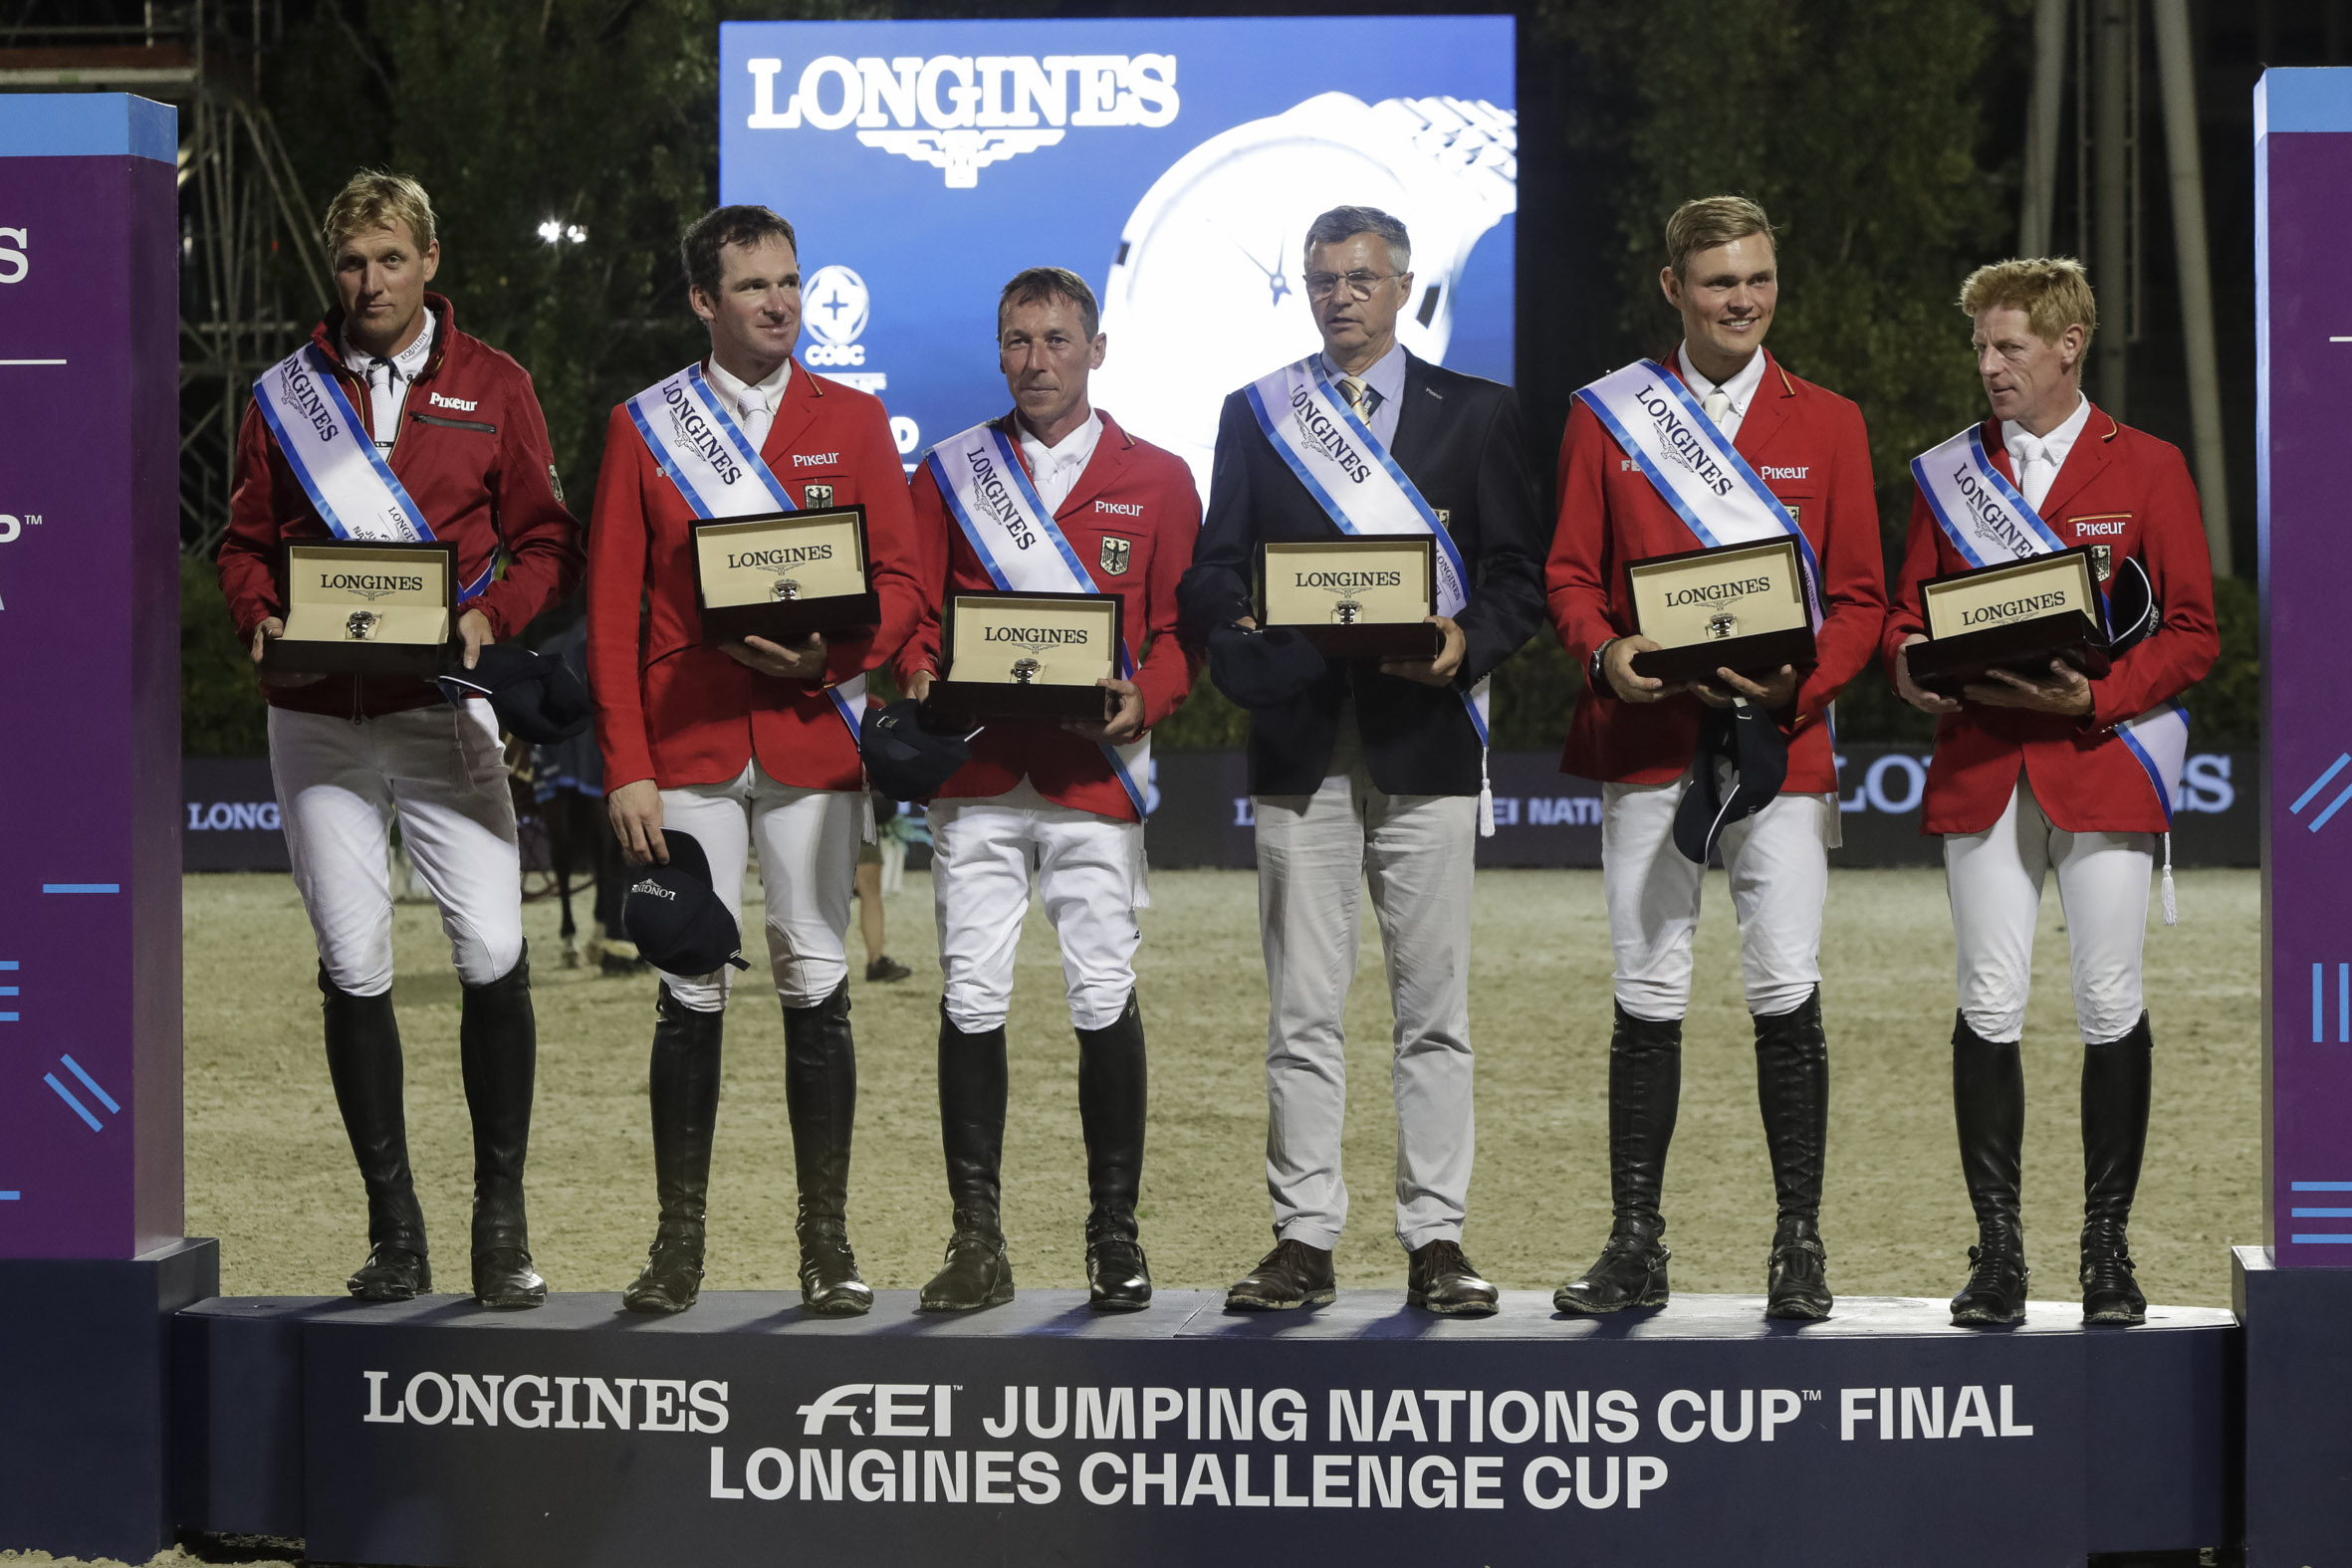 Germany, winner of the Longines Challenge Cup